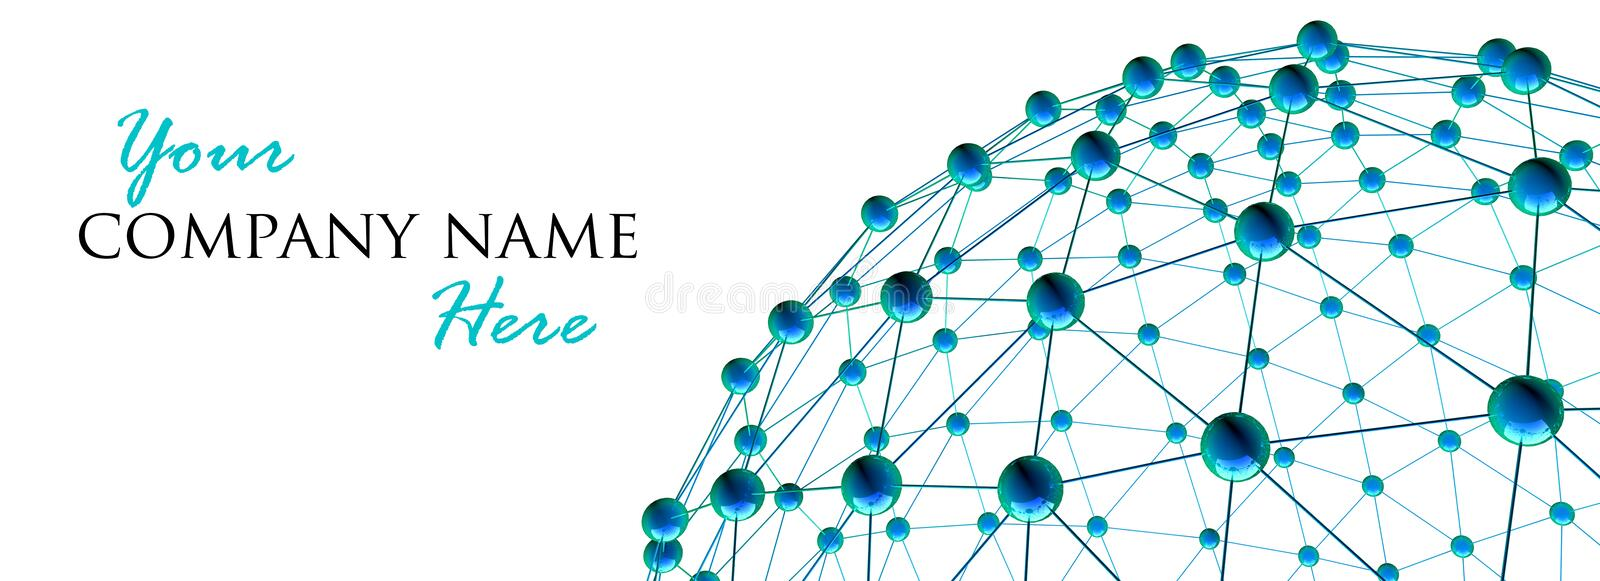 3d render of abstract network royalty free stock photo